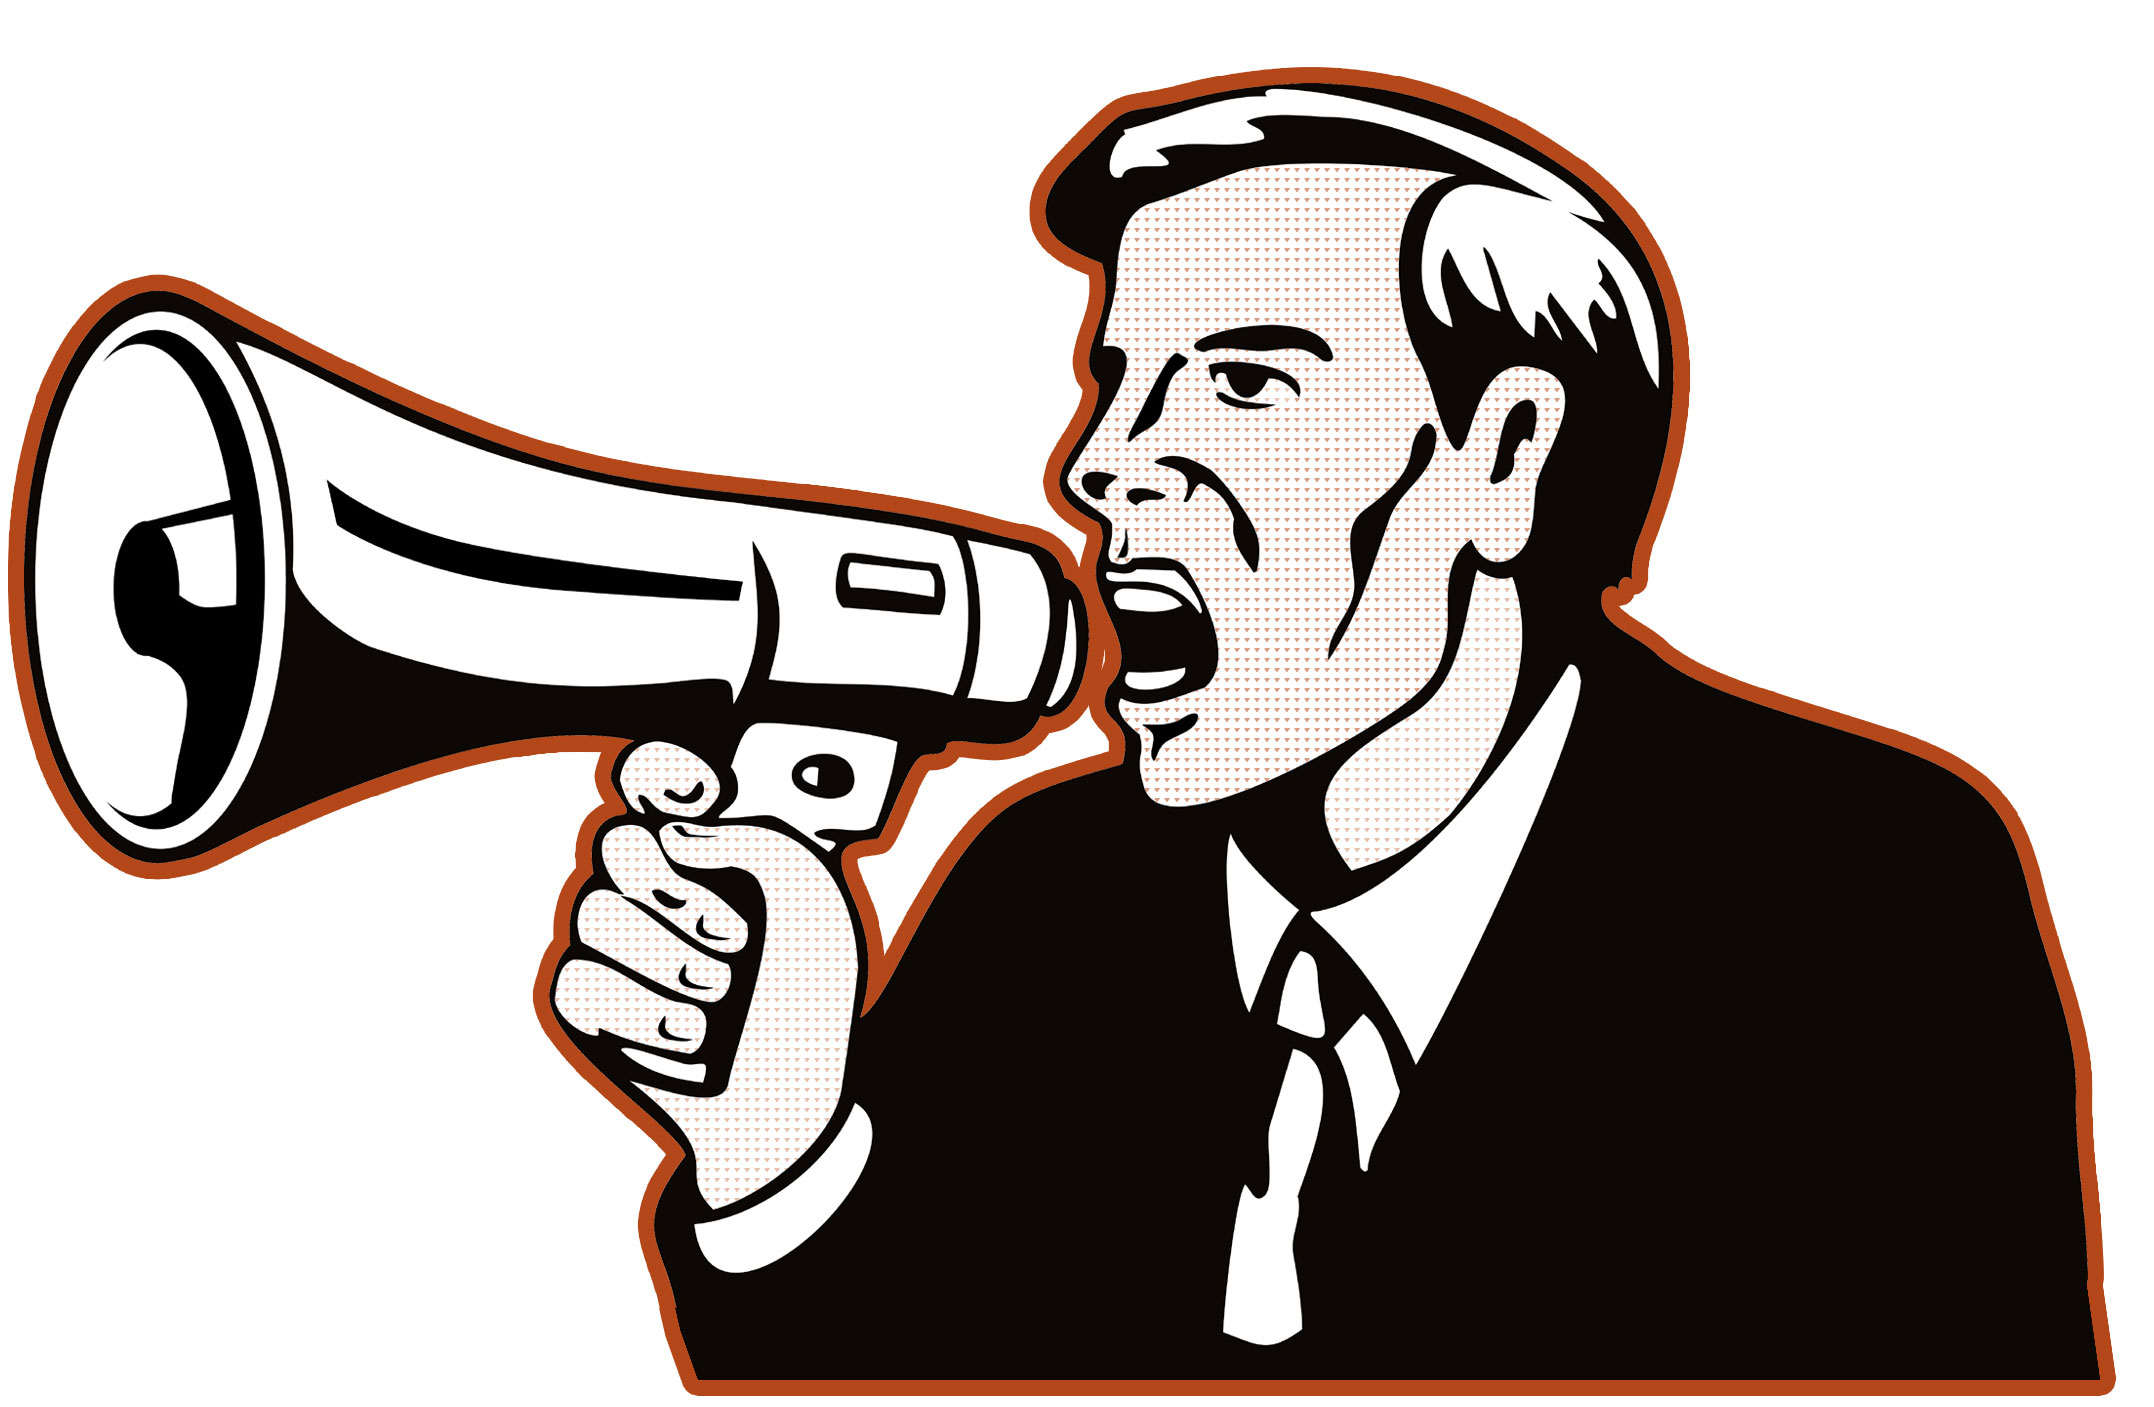 2154x1407 Men, Shut Up For Your Rights!' Language A Feminist Guide